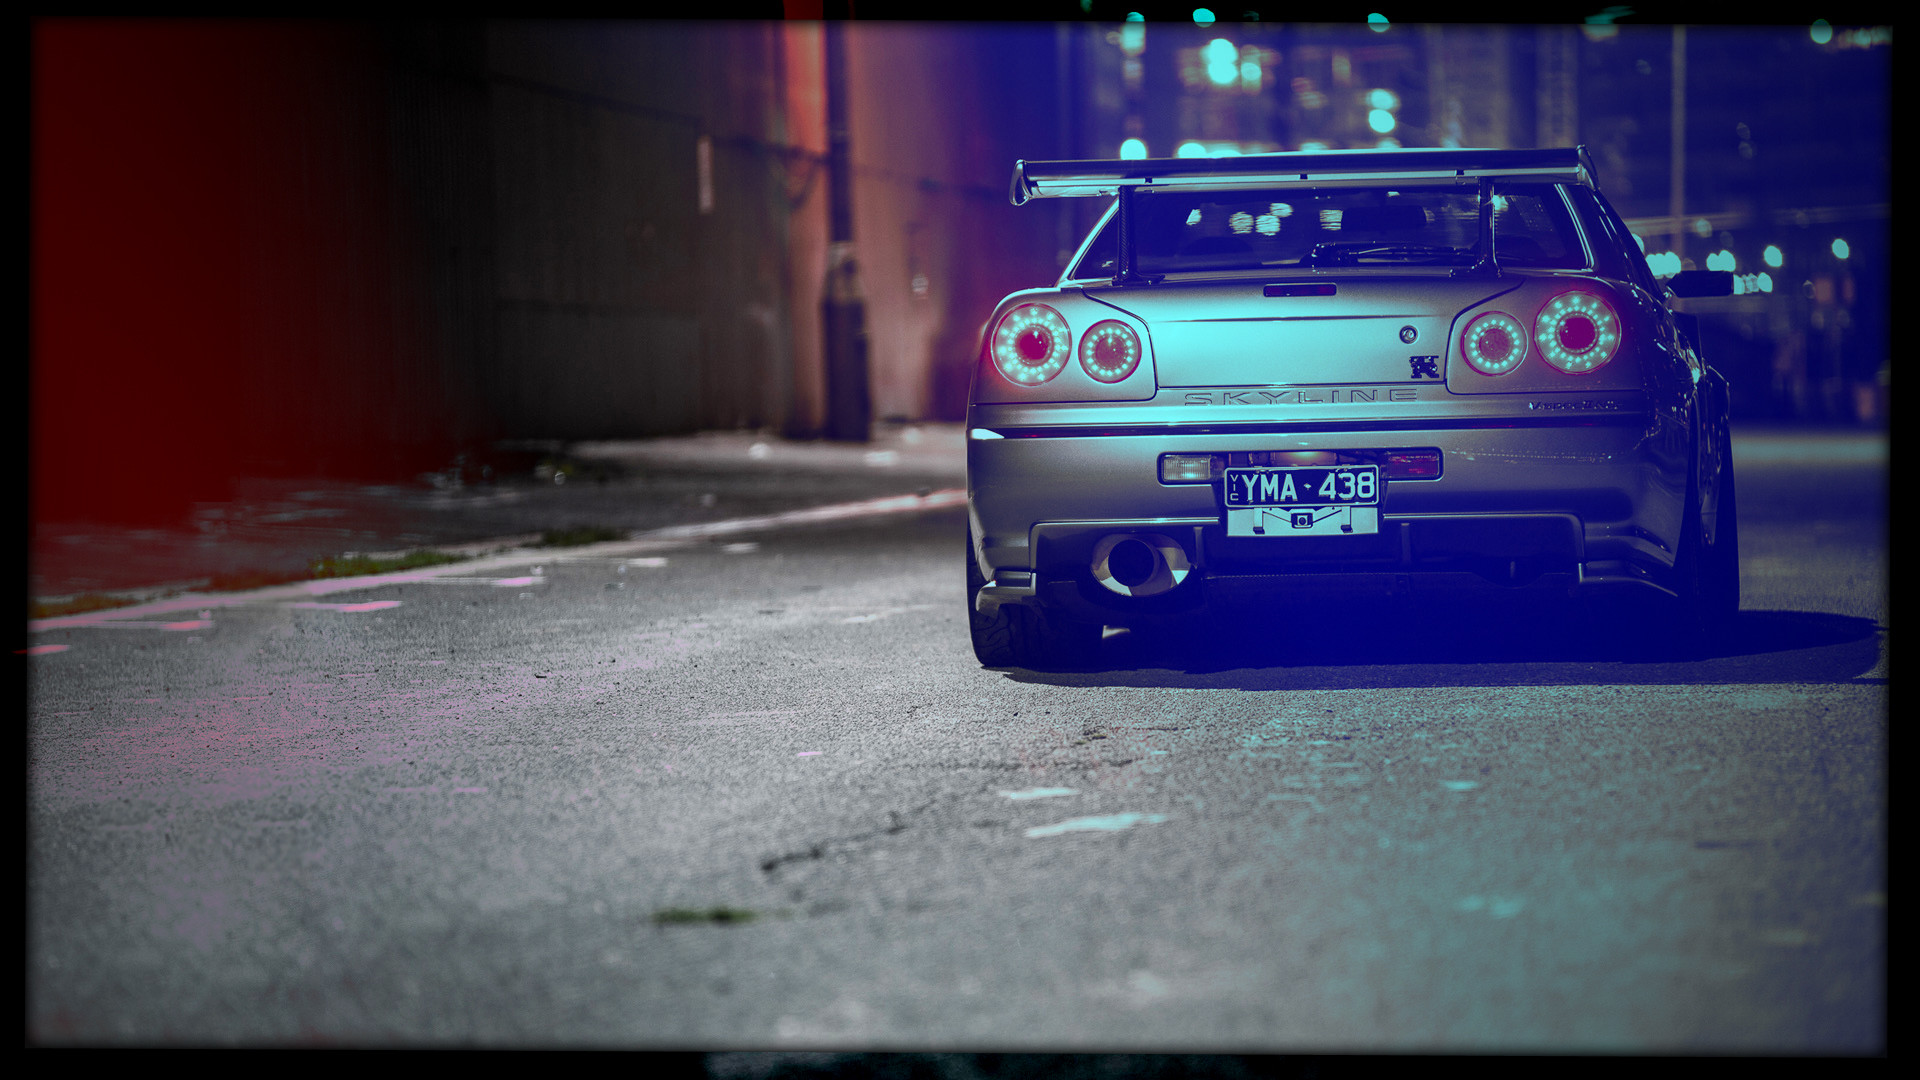 1920x1080 Nissan Skyline R34 Wallpaper by HeerenMistry Nissan Skyline R34 Wallpaper  by HeerenMistry